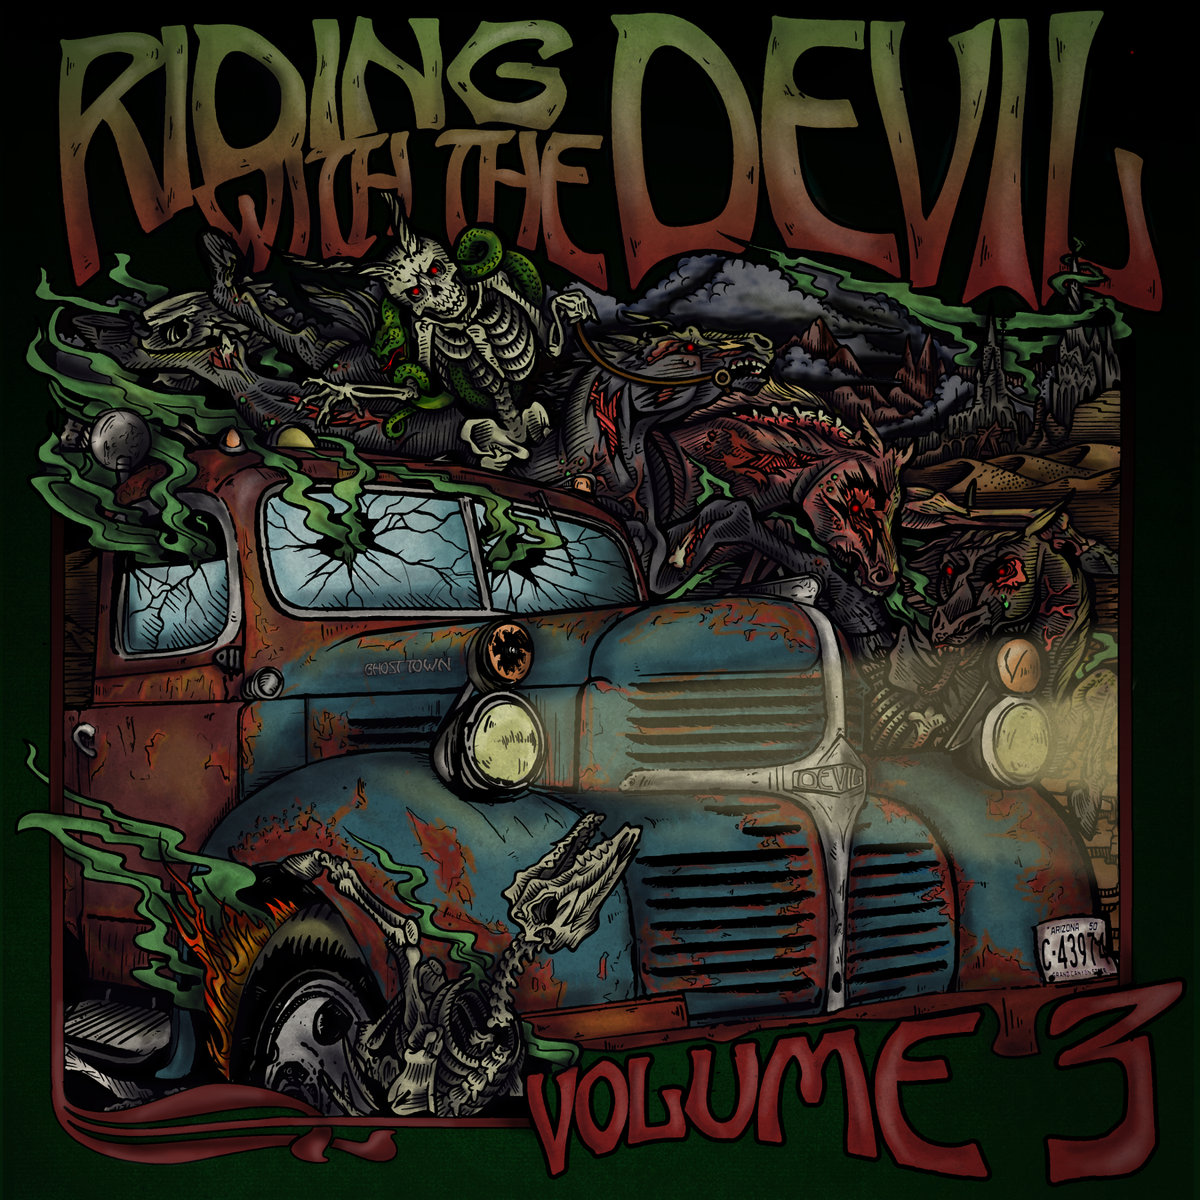 Animi Vultus - All of My Dirt from Riding With The Devil, Vol. 3 (CD 2) by The Burning Beard